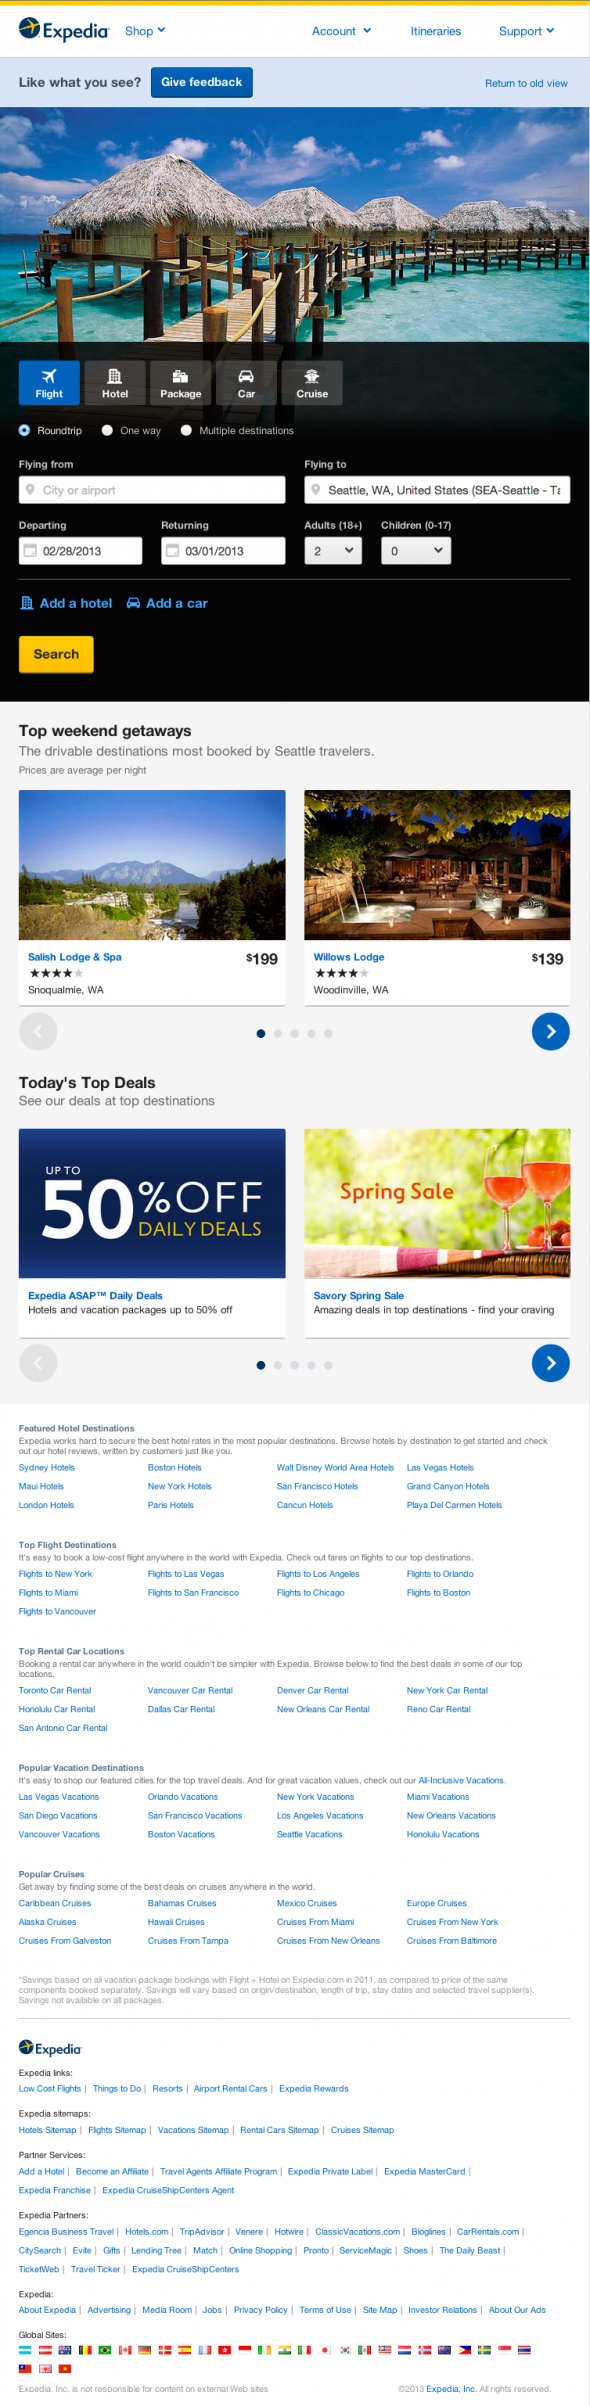 Expedia homepage redesign on tablet